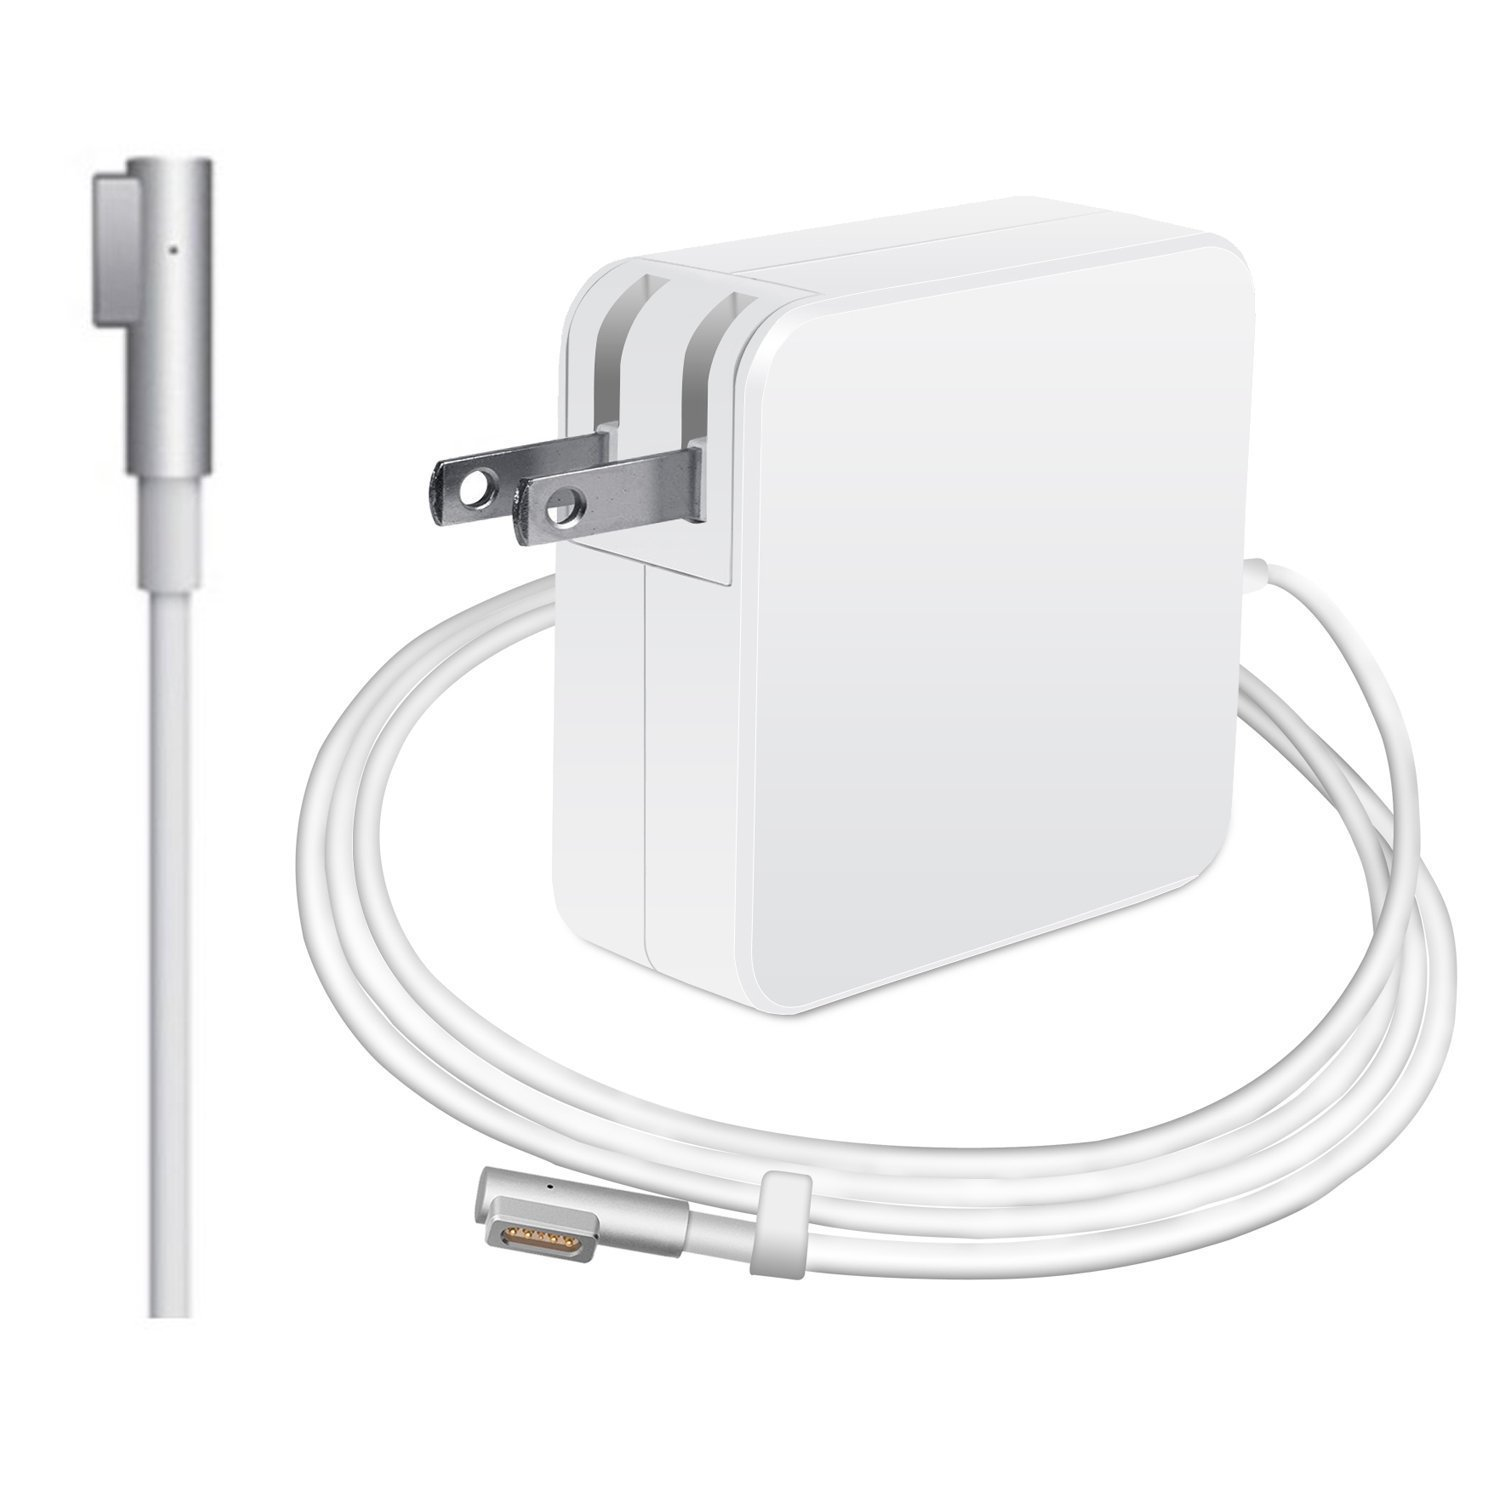 MacBook Pro Charger,Tango Replacement MacBook Charger 60W Magsafe 1 Magnetic L-Tip Power Adapter Charger for Apple MacBook Pro 13-inch 15-inch by Taro